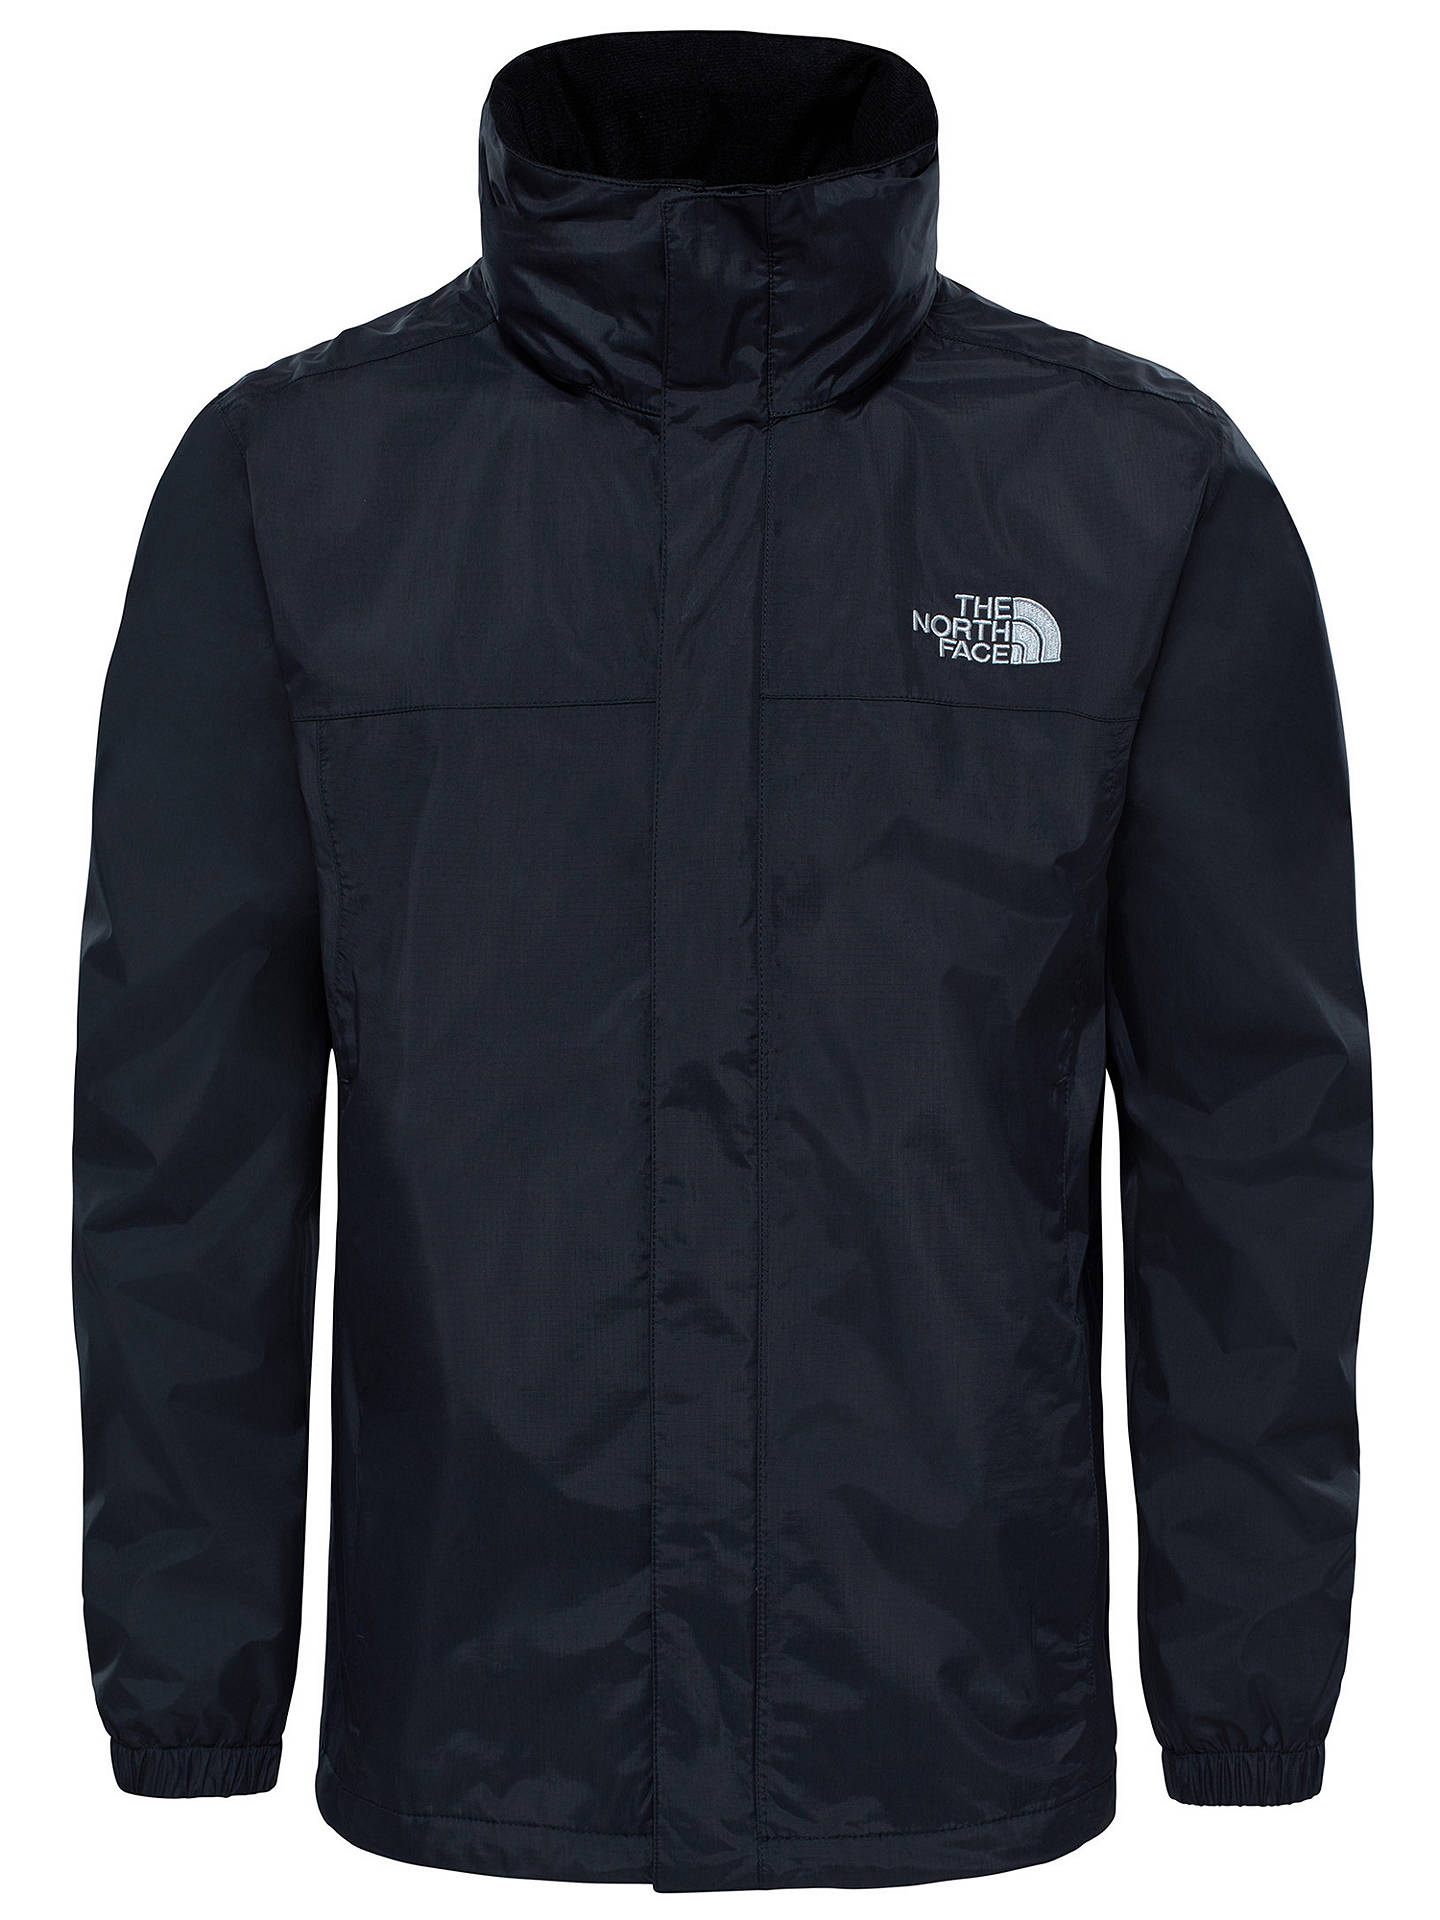 07ff7a1e54 BuyThe North Face Resolve 2 Waterproof Men s Jacket